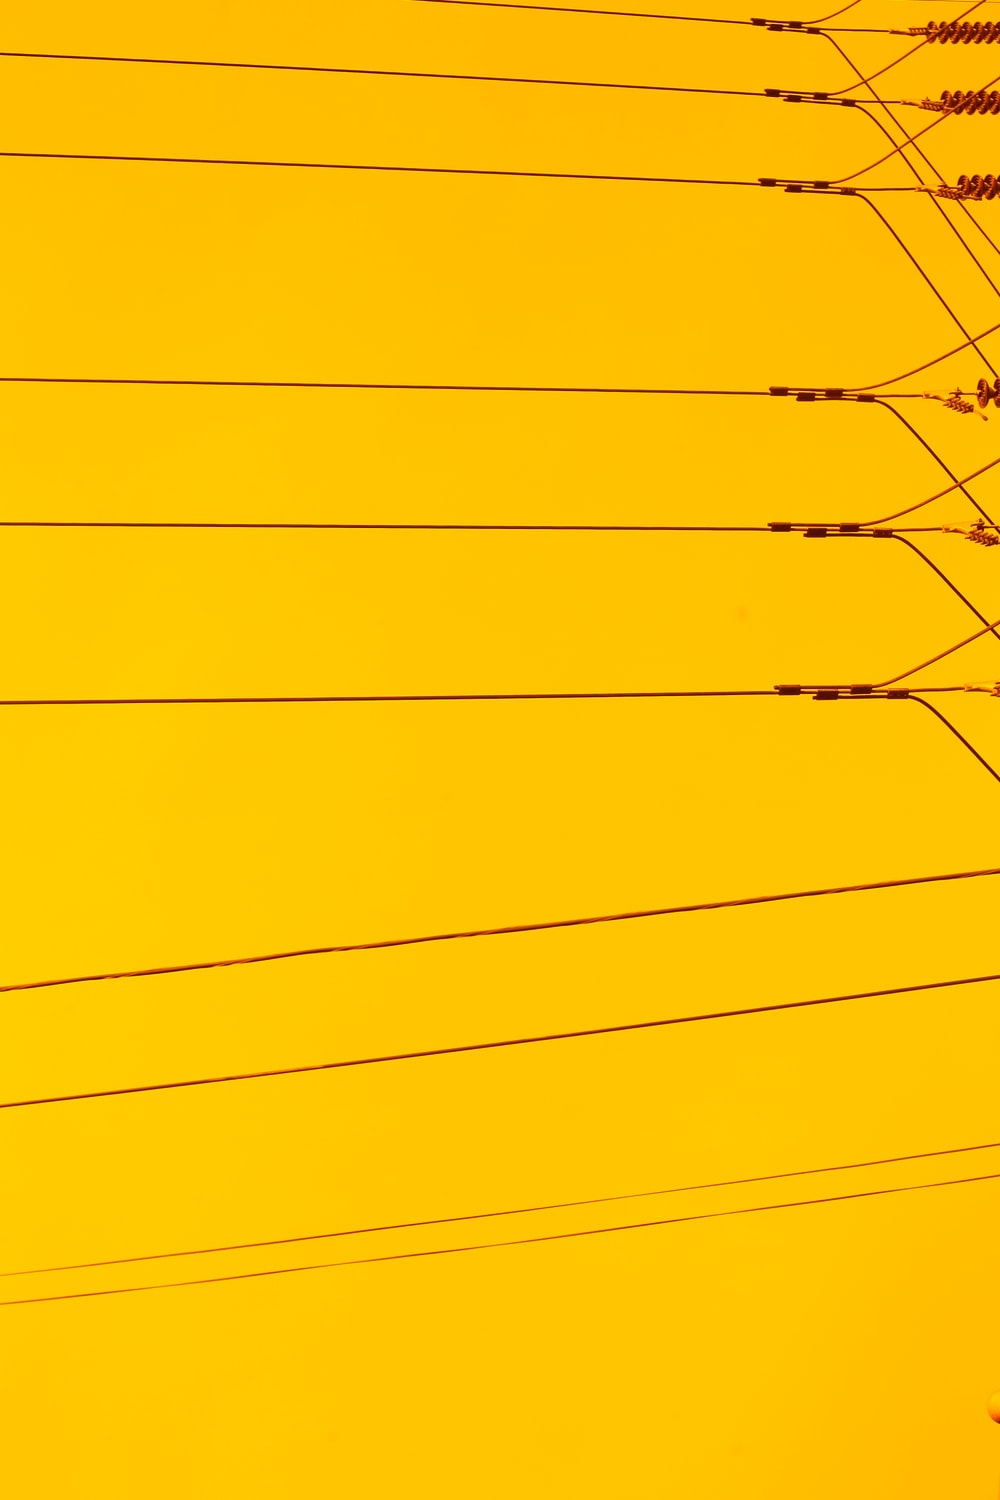 black electric wires under blue sky during daytime